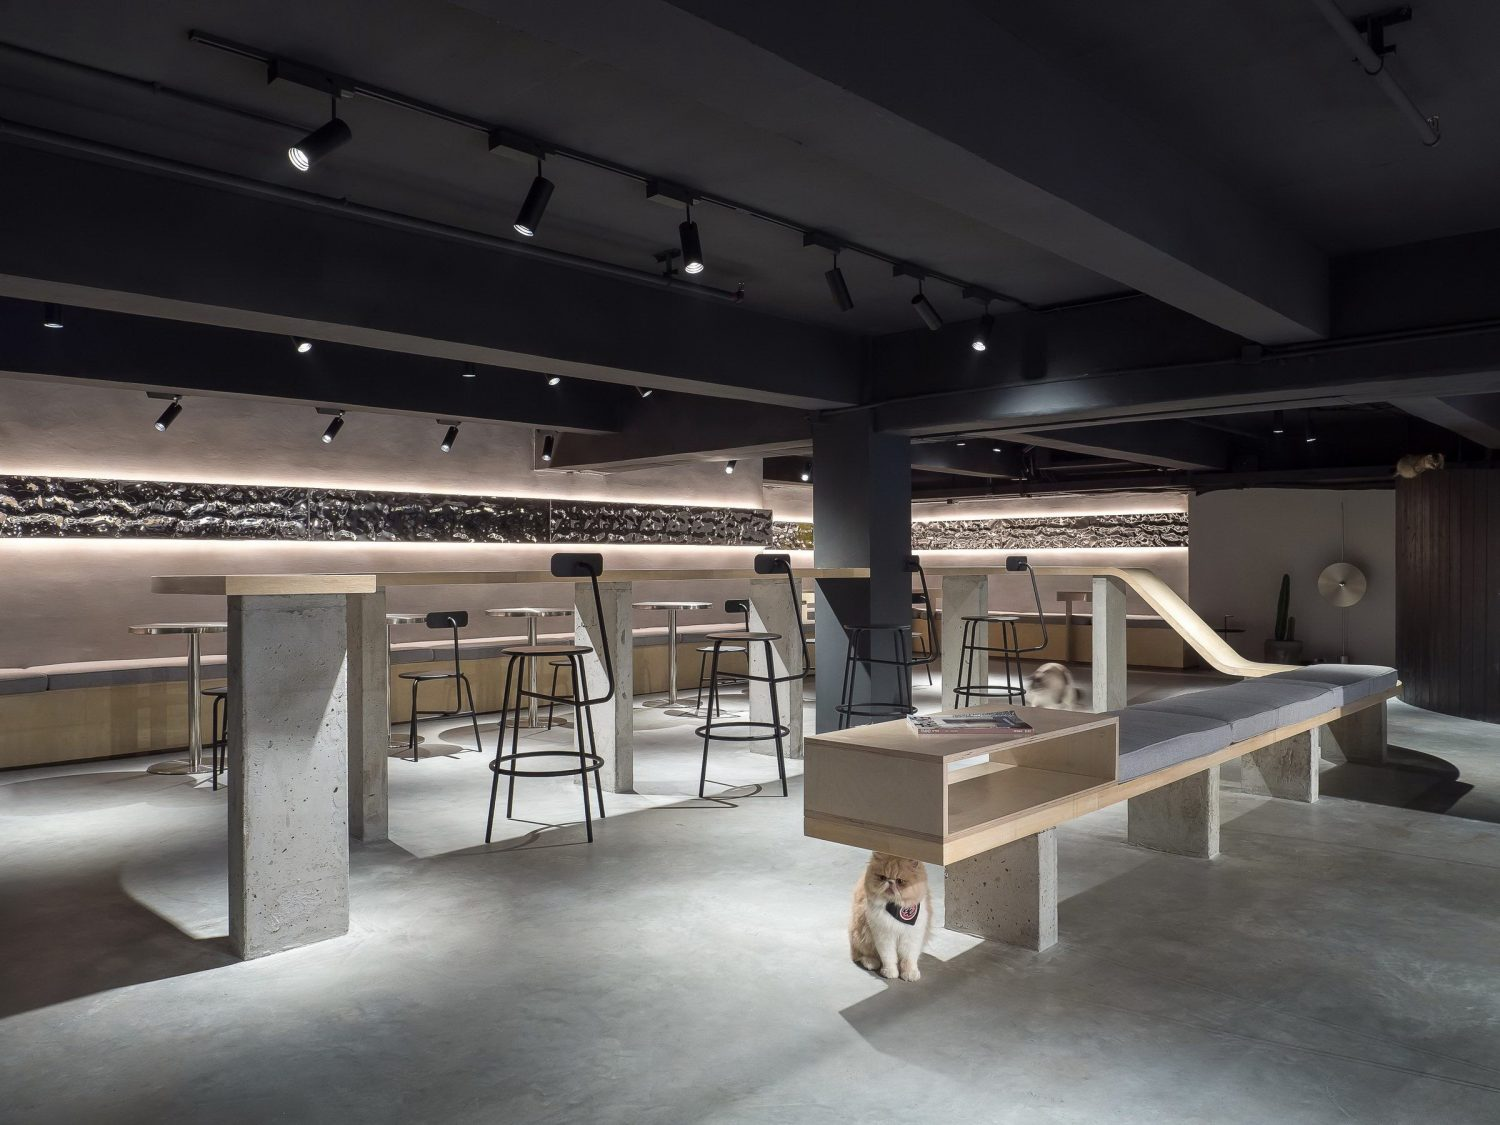 Meow Restaurant by E Studio